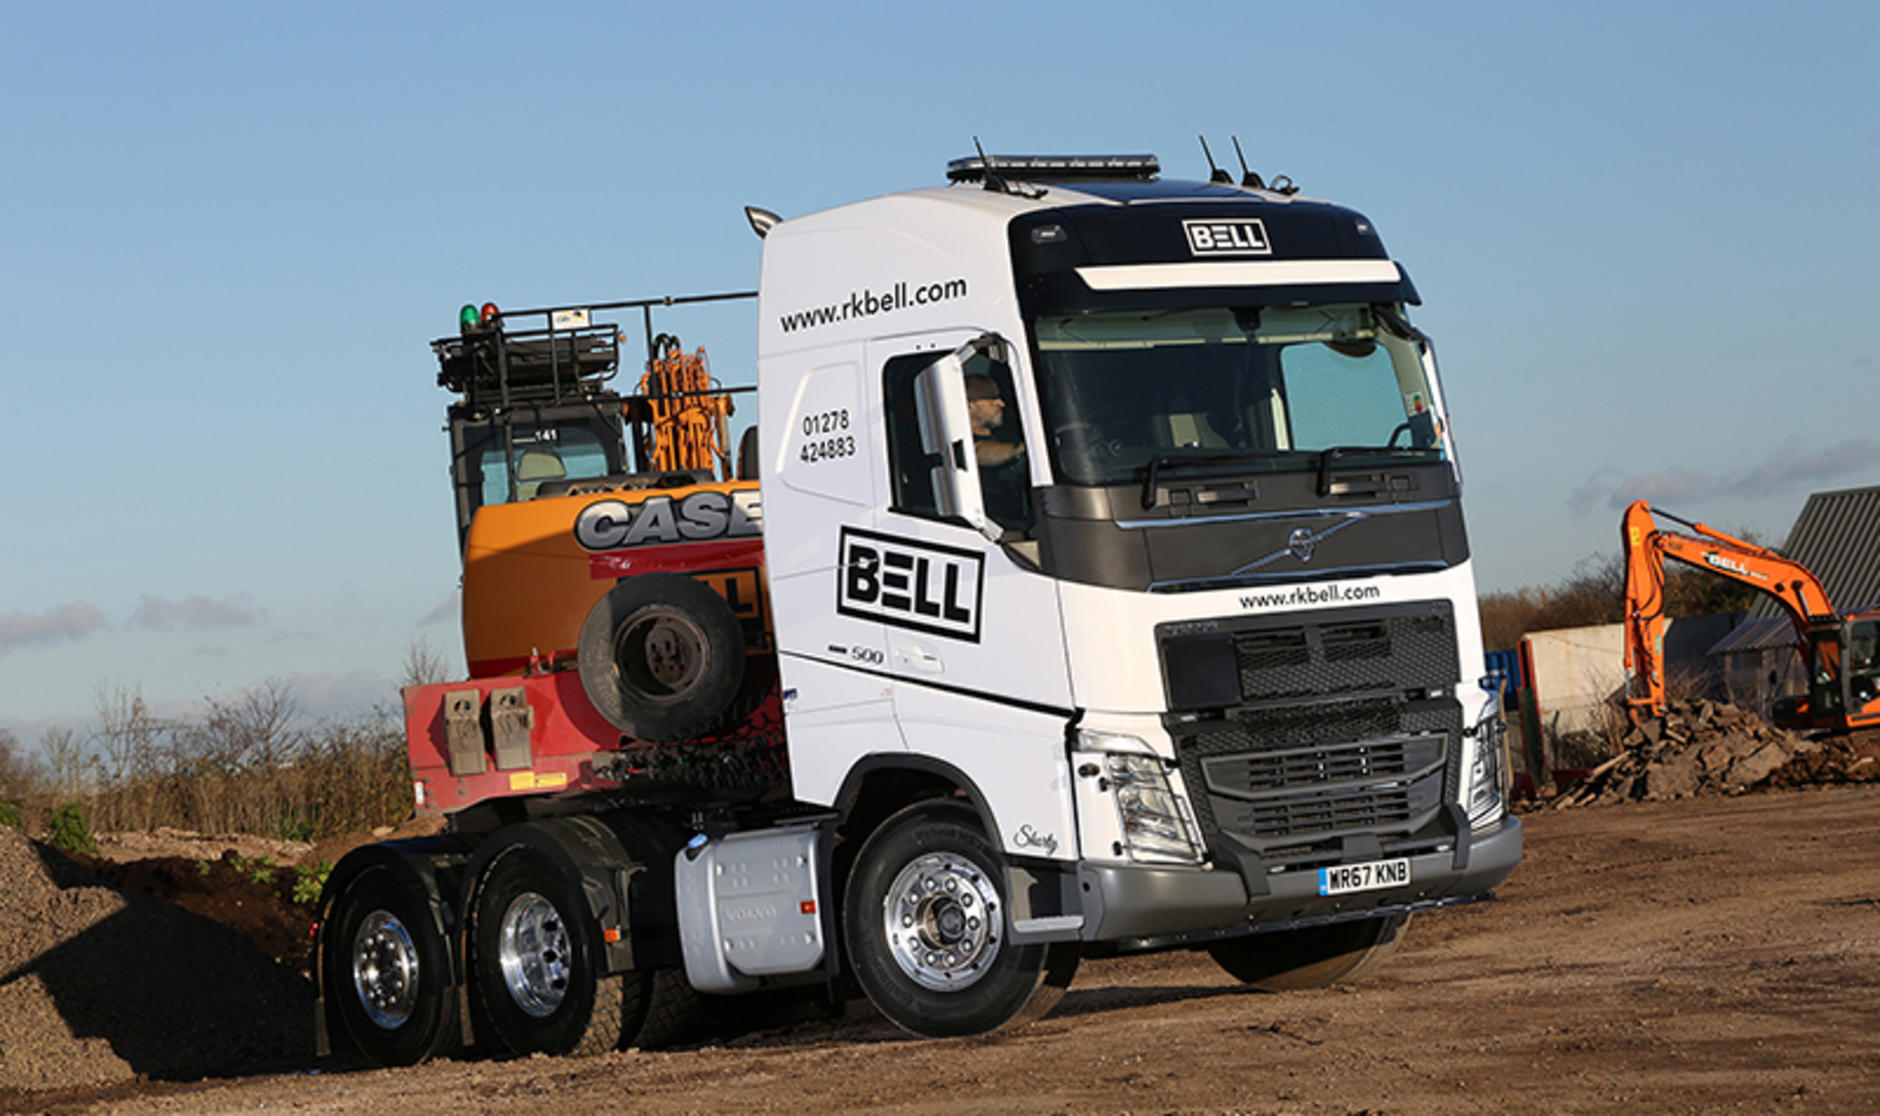 427dd3faeb Truck and Bus Wales and West supplies RK Bell Group with an FH 500 ...